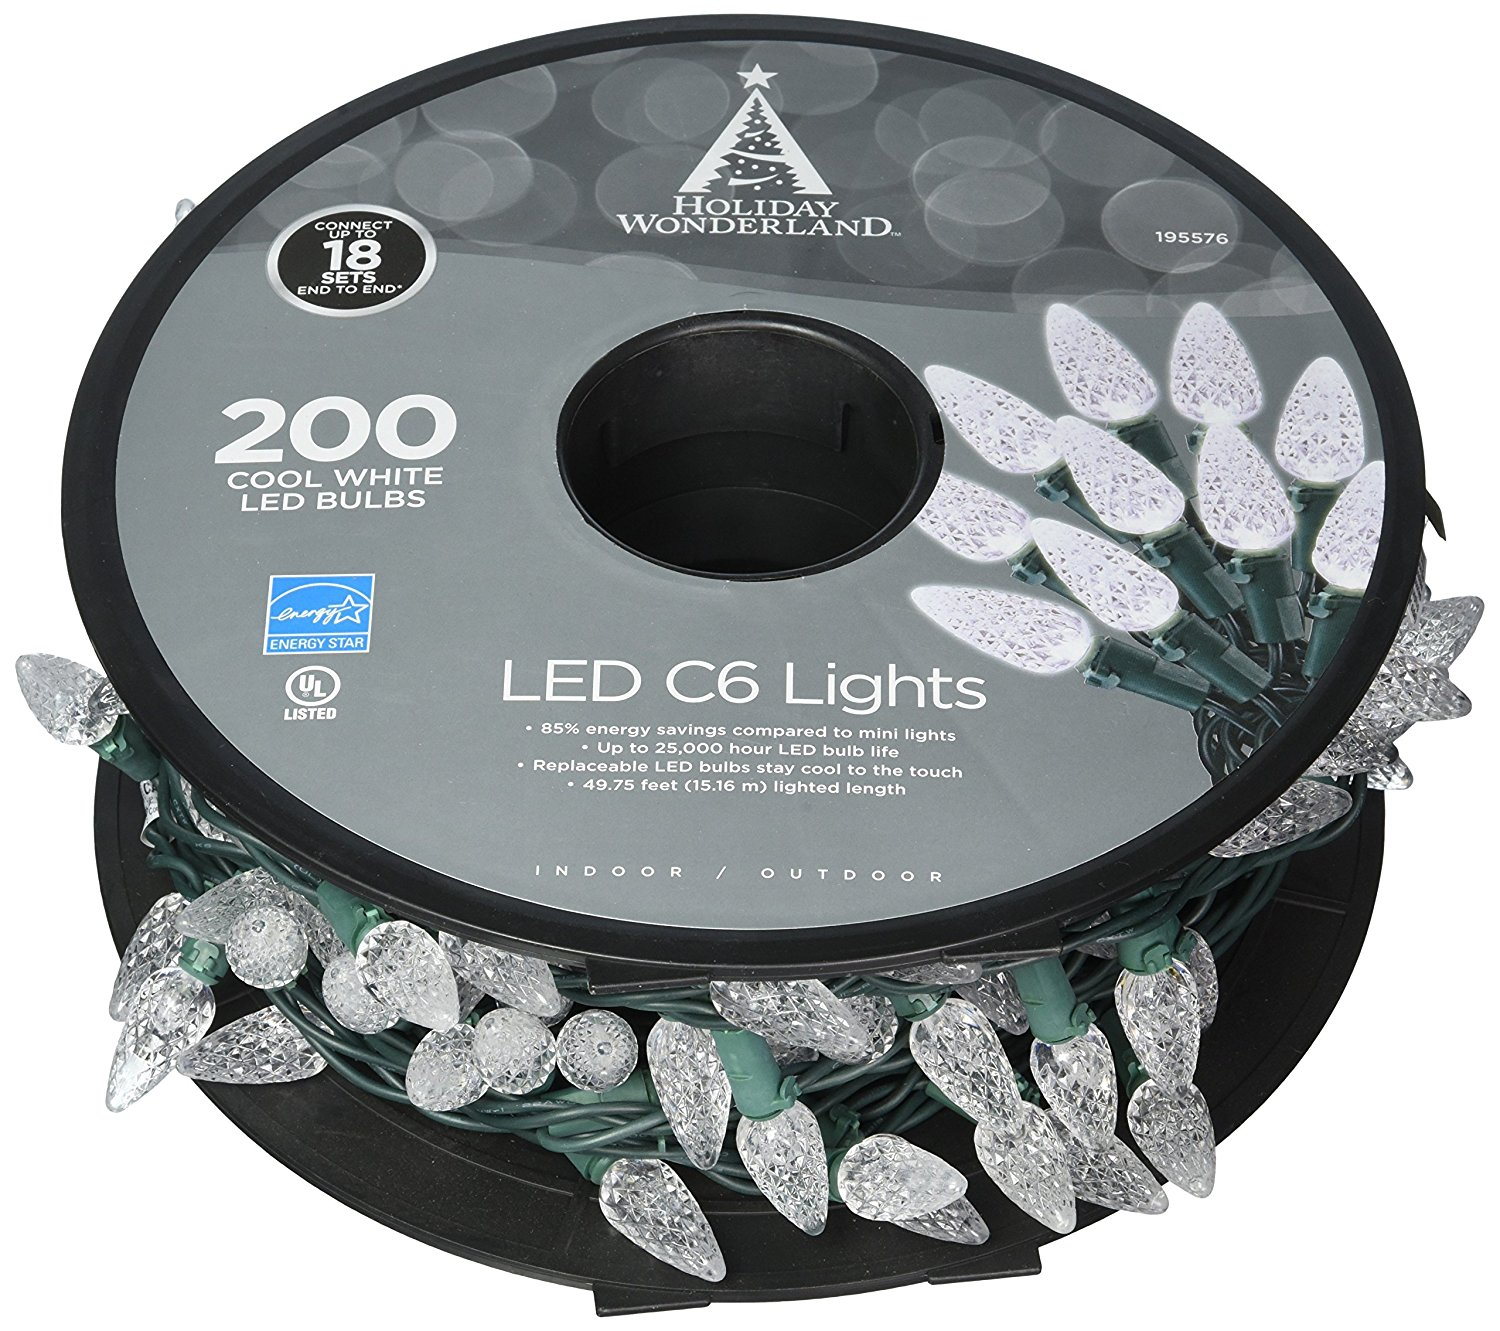 "NOMA/INMLITEN-IMPORT 47940-88A 200 Count, Cool White, C6, LED Light Set, On Spool, Green Wire, 3"" Light Spacing, 12"" Lead, 4"" End, 49.8' Lighted Length, 51' Total Length."